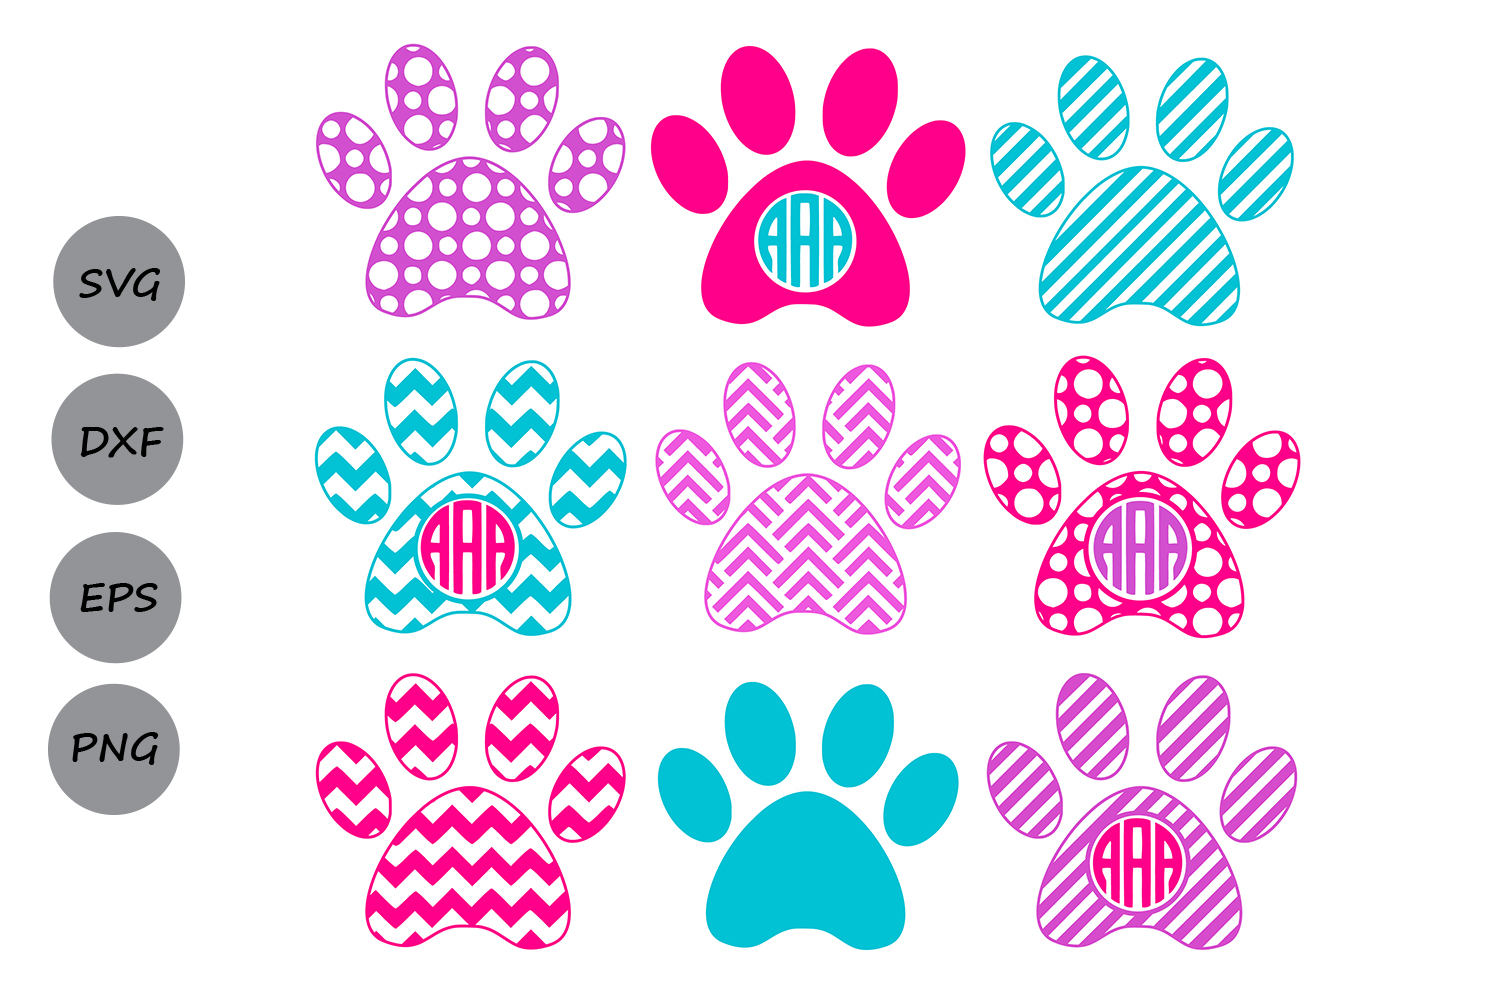 Download Free Paw Print Monogram Svg Graphic By Cosmosfineart Creative Fabrica for Cricut Explore, Silhouette and other cutting machines.